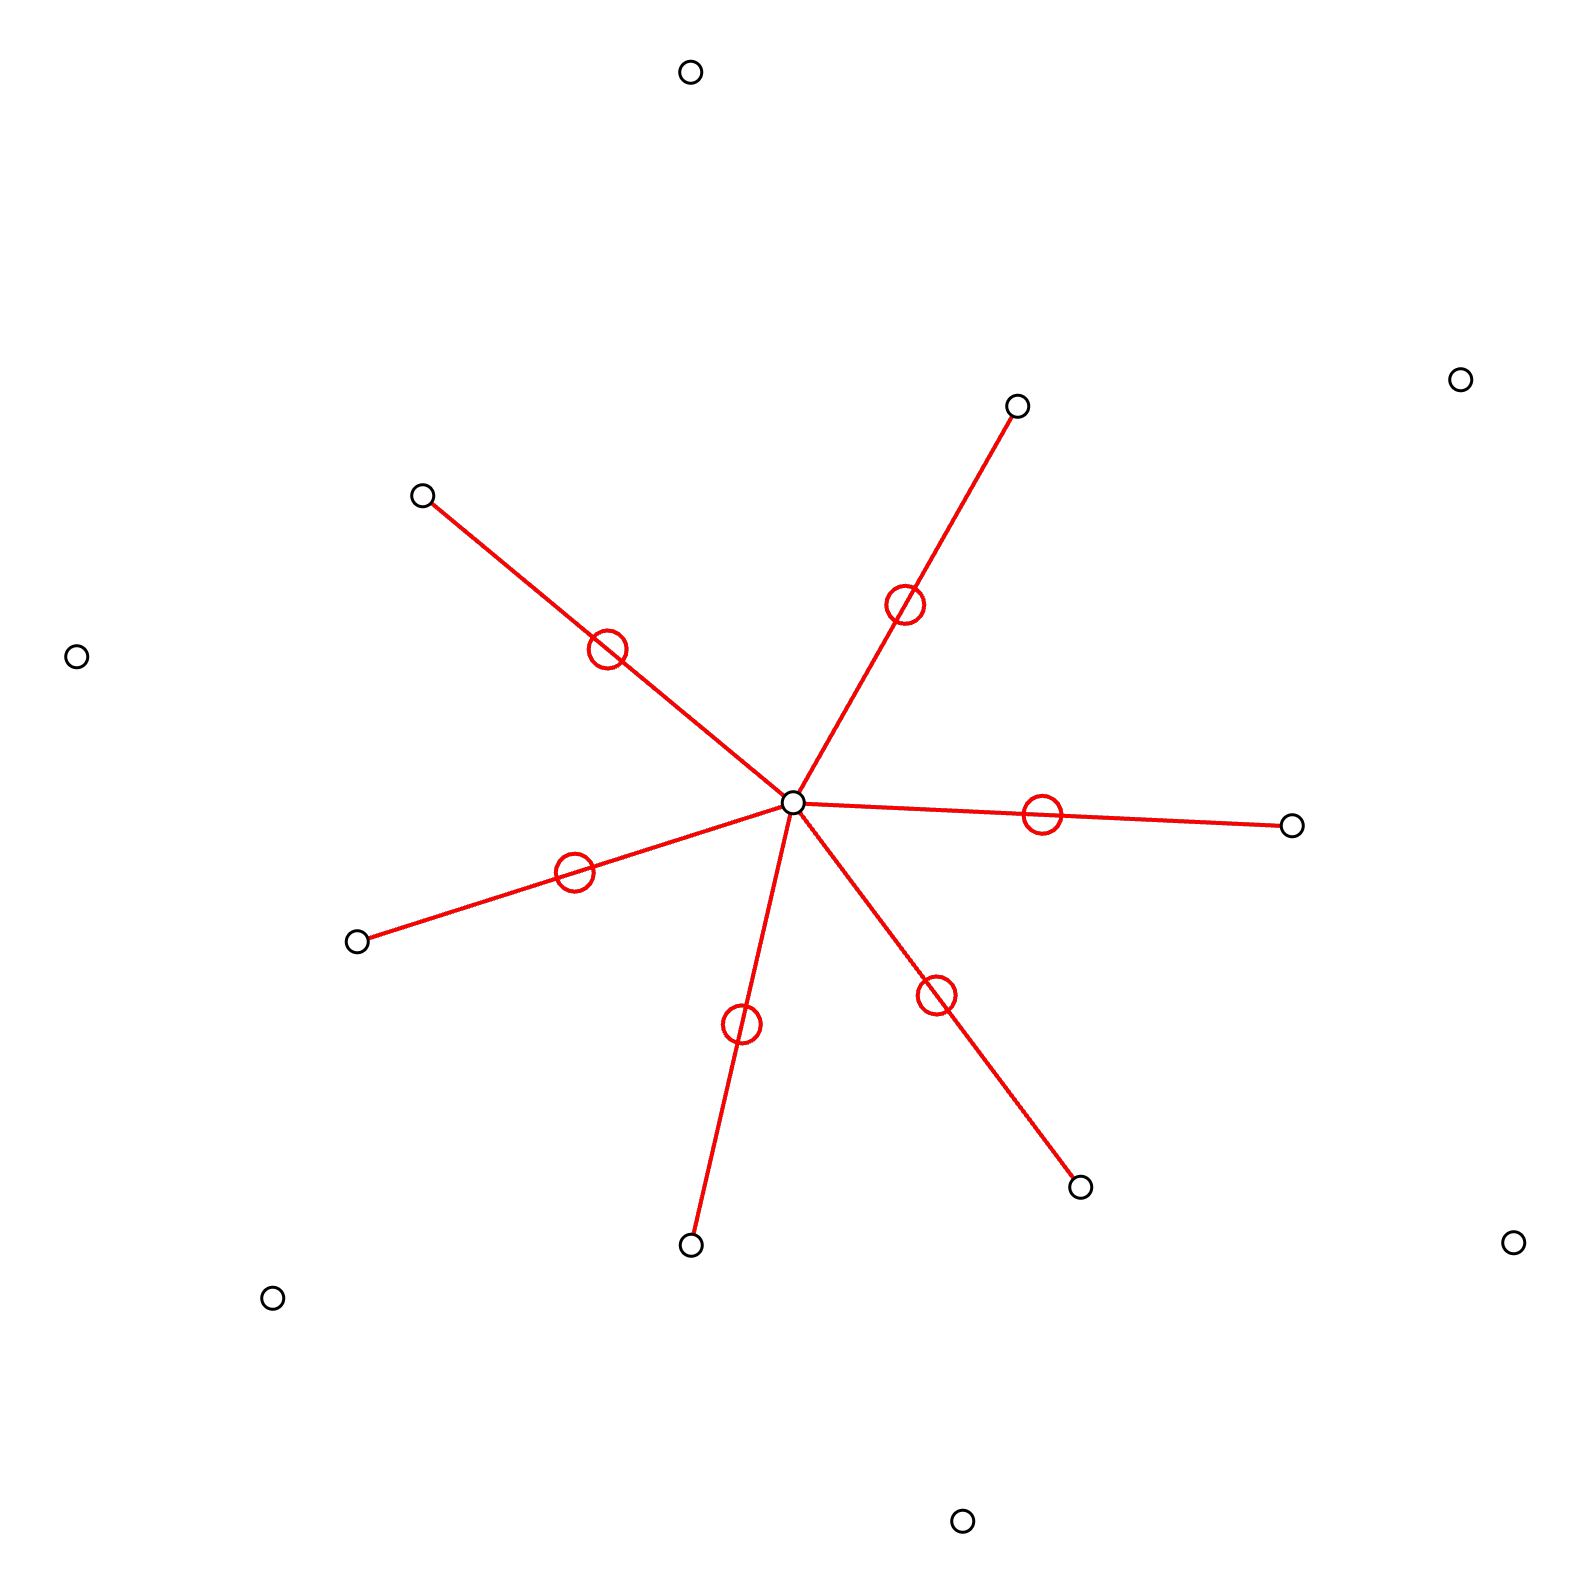 Step 4: Identify the mid points of the connectivity lines